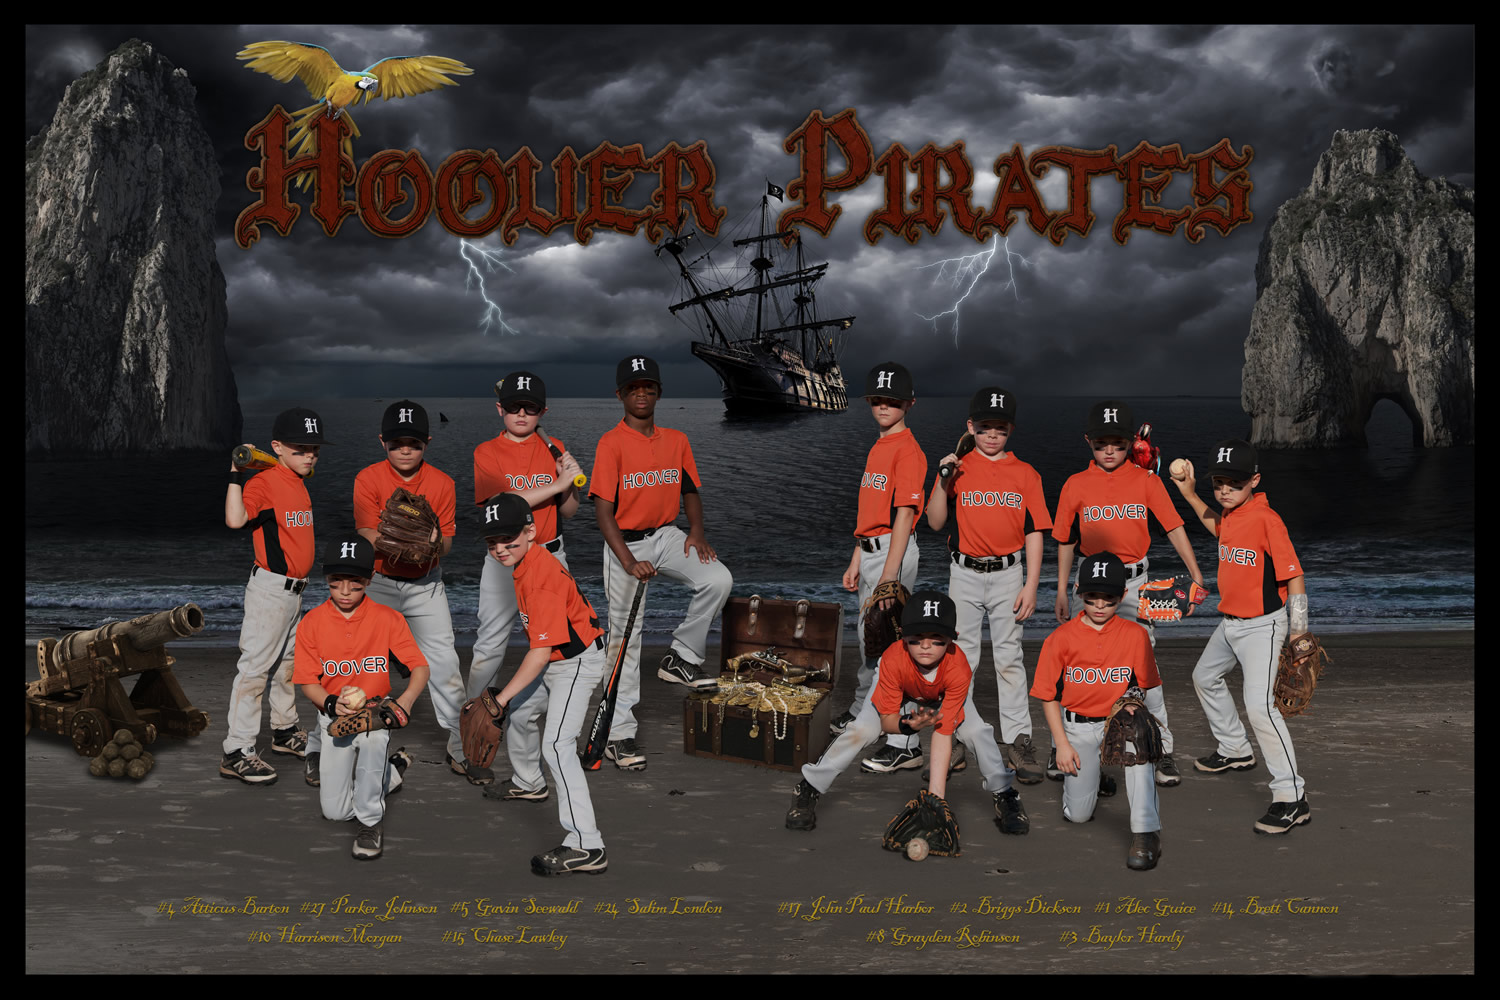 Hoover Pirates 2015 - Click image to enlarge